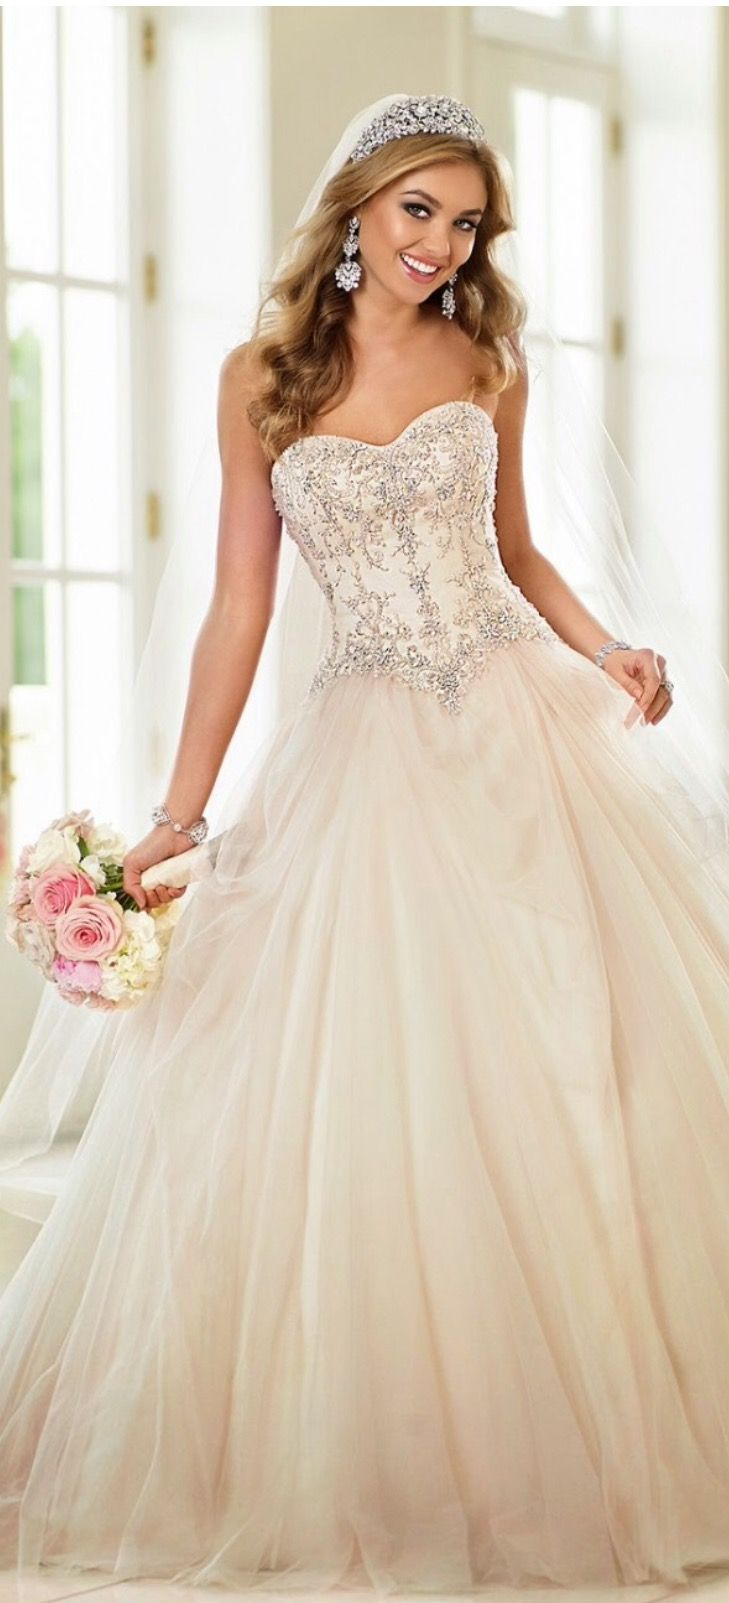 best one day images on pinterest wedding ideas bridal gowns